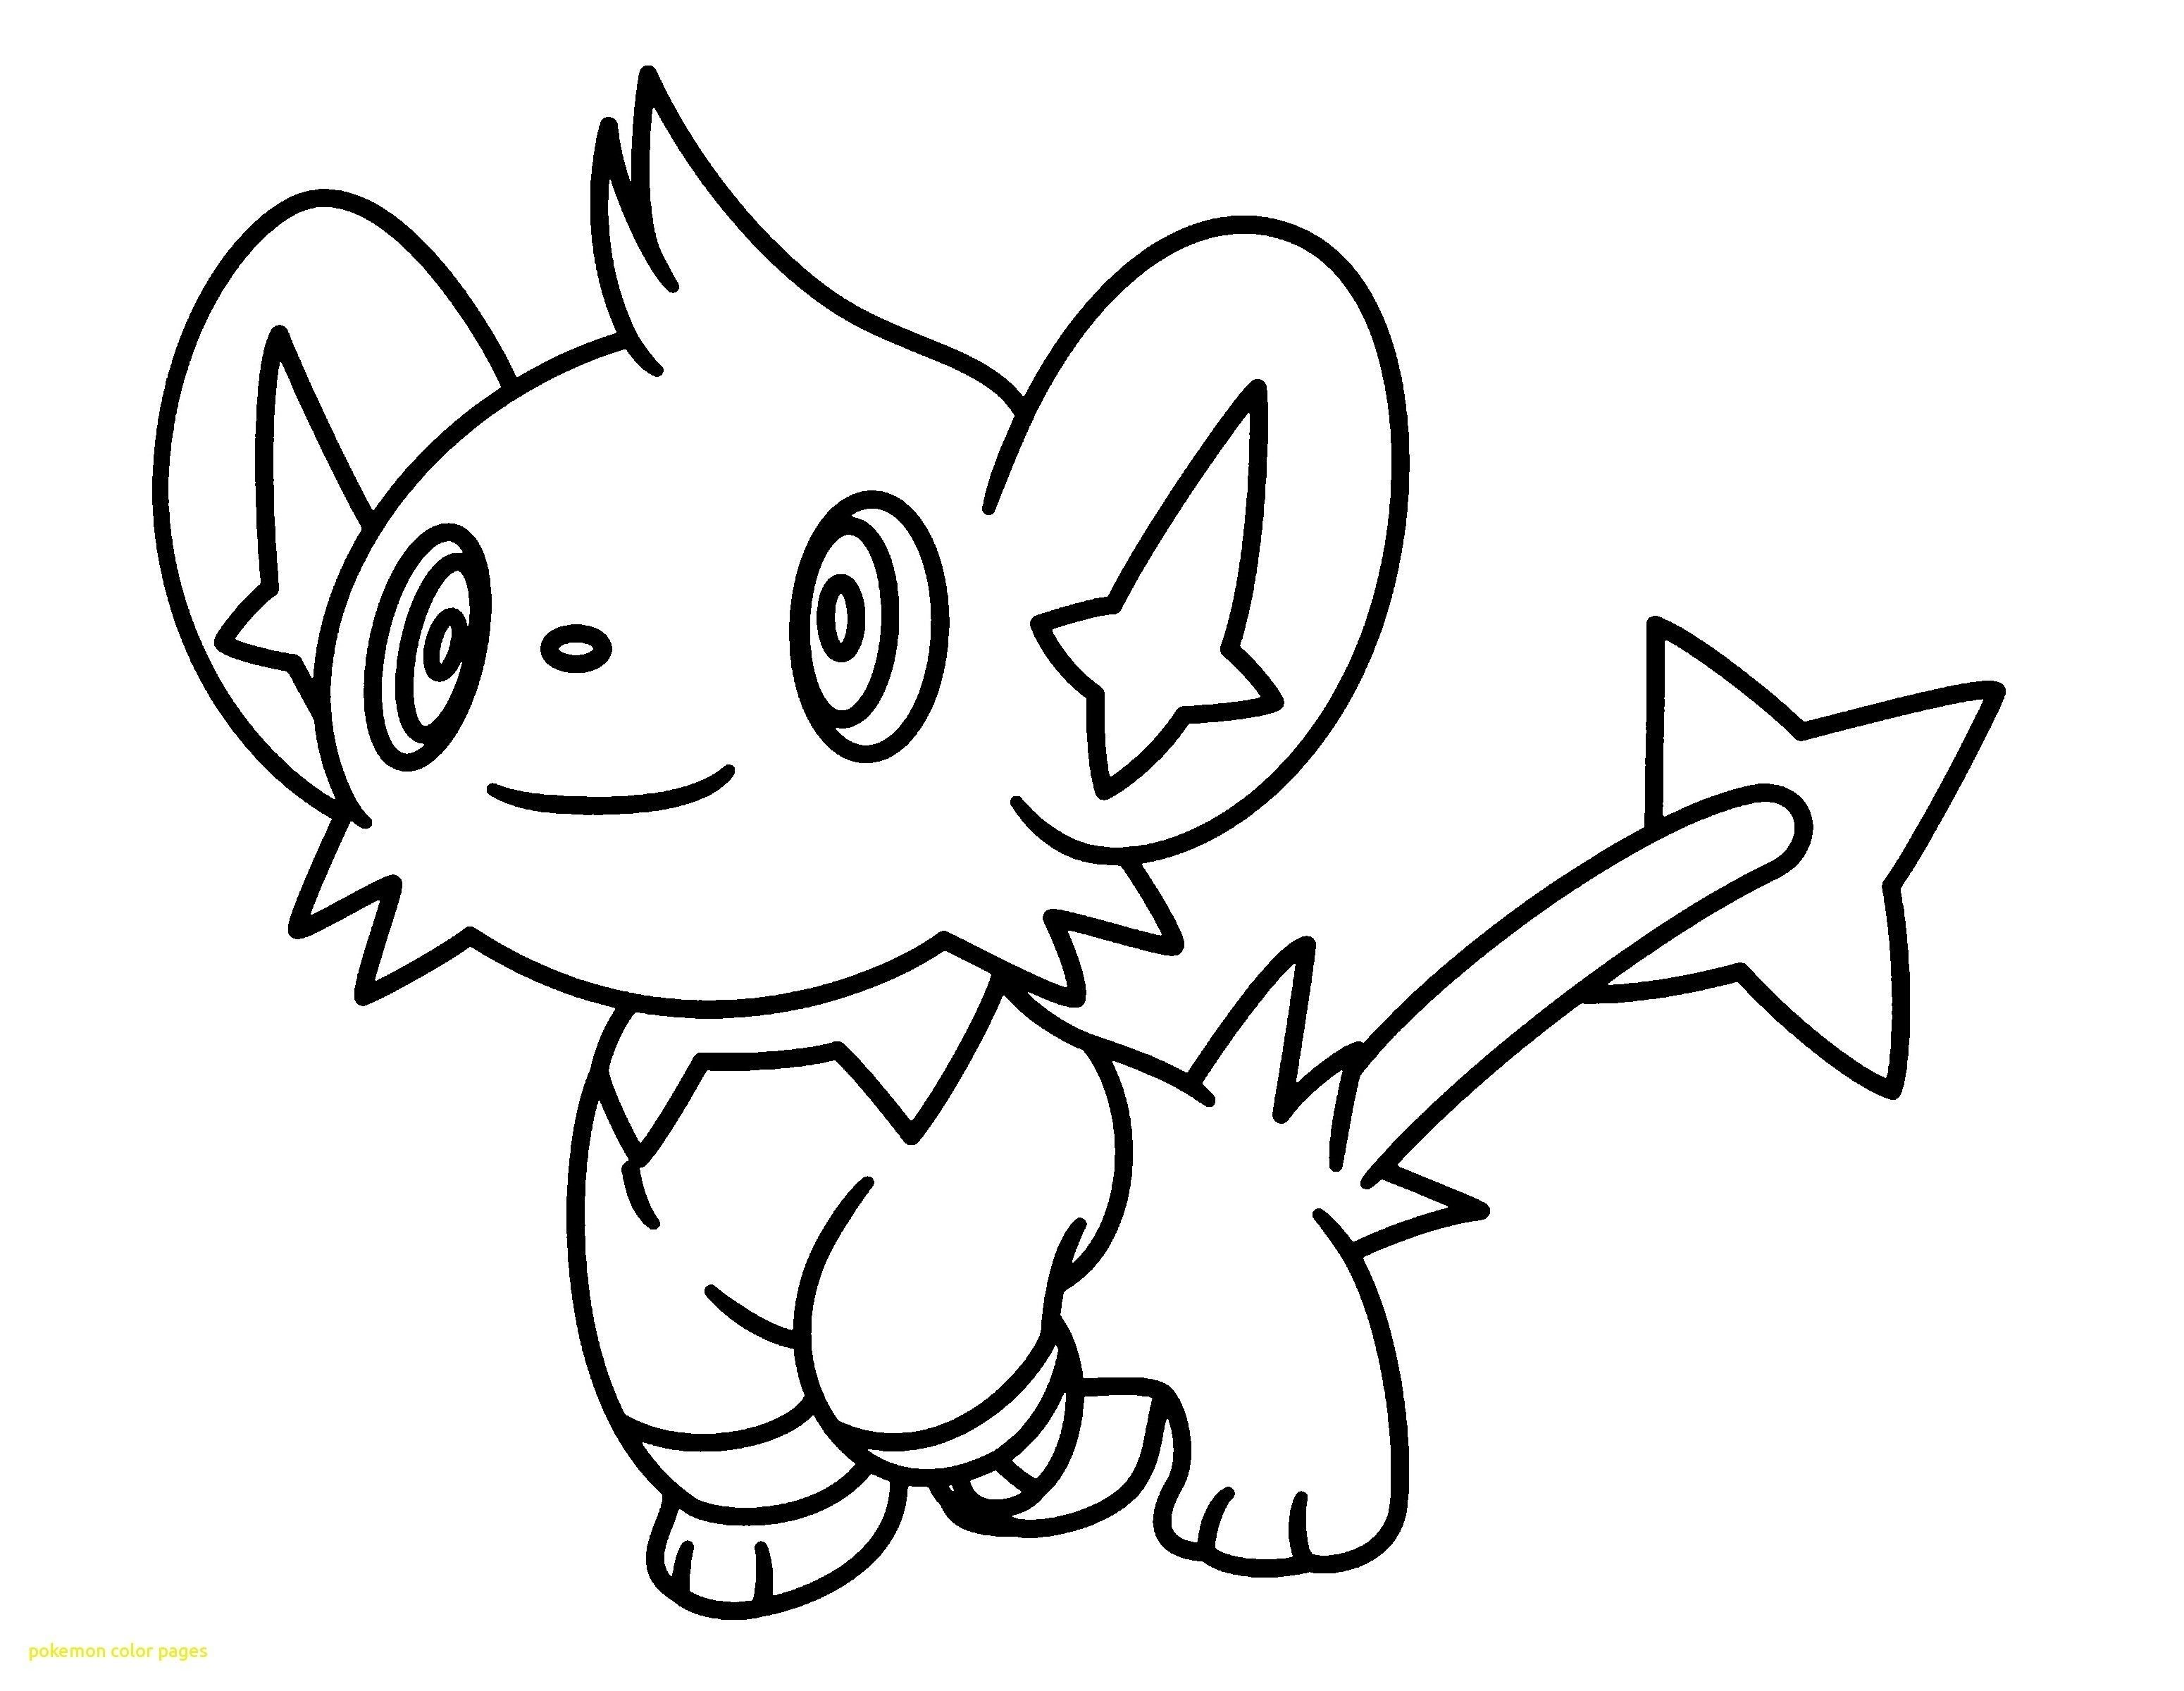 Alola Pokemon Coloring Pages Coloring Pages Allow Kids To Accompany Their Favorite Characters Pokemon Coloring Pikachu Coloring Page Pokemon Coloring Sheets